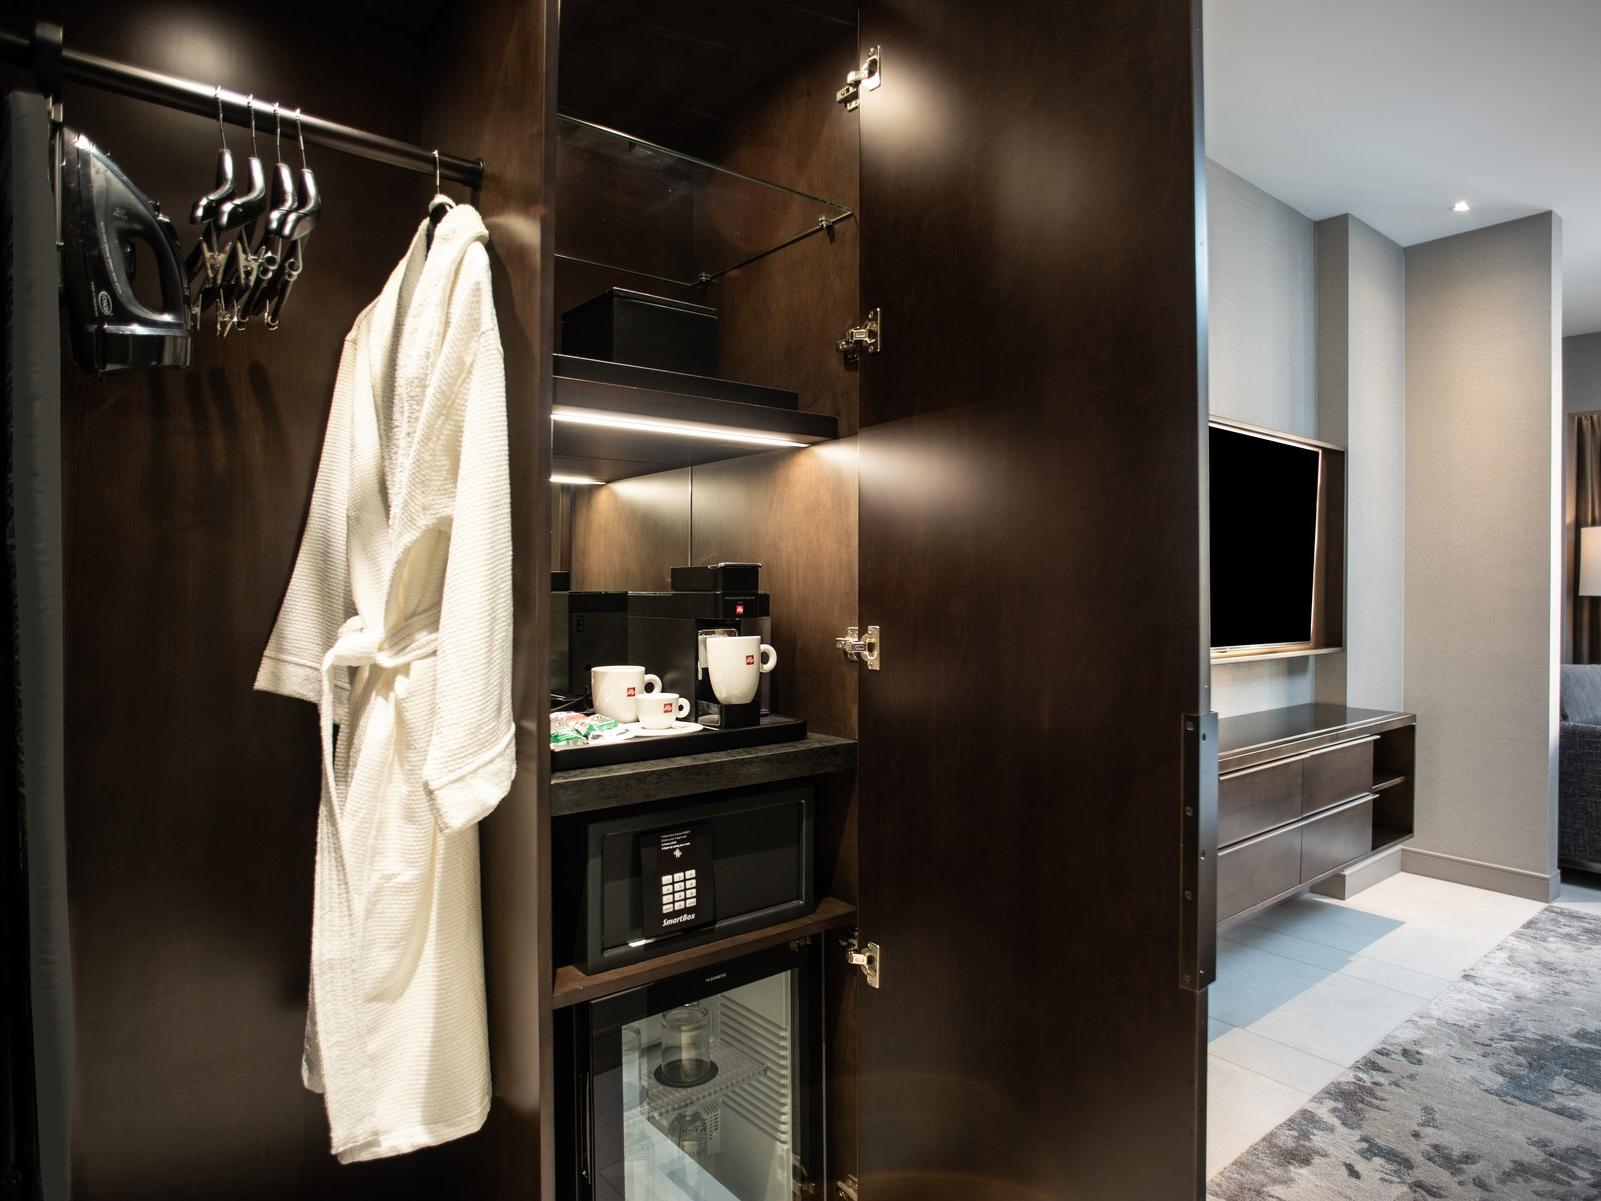 Wardrobe with robe hanging up and